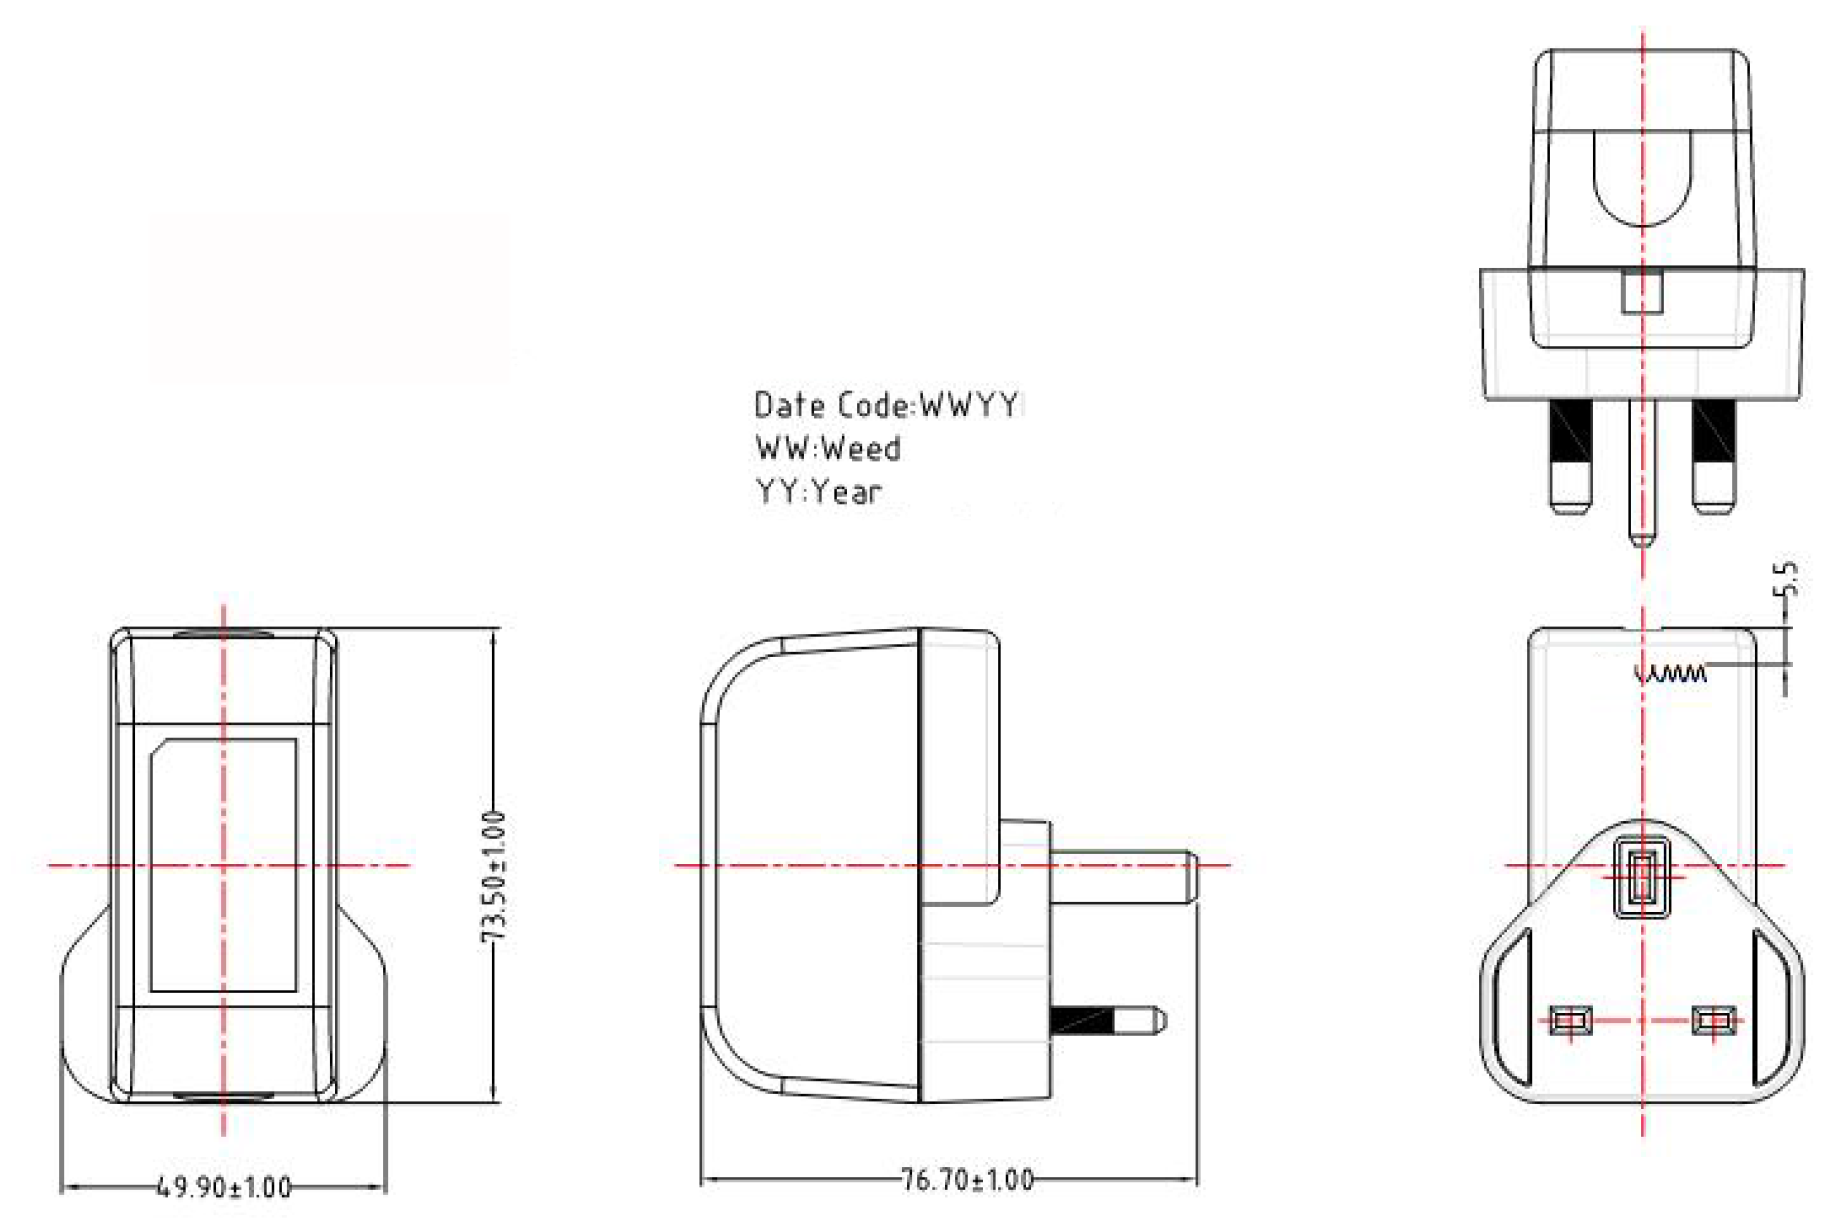 Diagram Of 100w Power  lifier further 192351 Diy Multi Meter 101 A besides Wiring For Auxiliary Rear Lights likewise Math likewise DURA 410. on 100 watts to amps